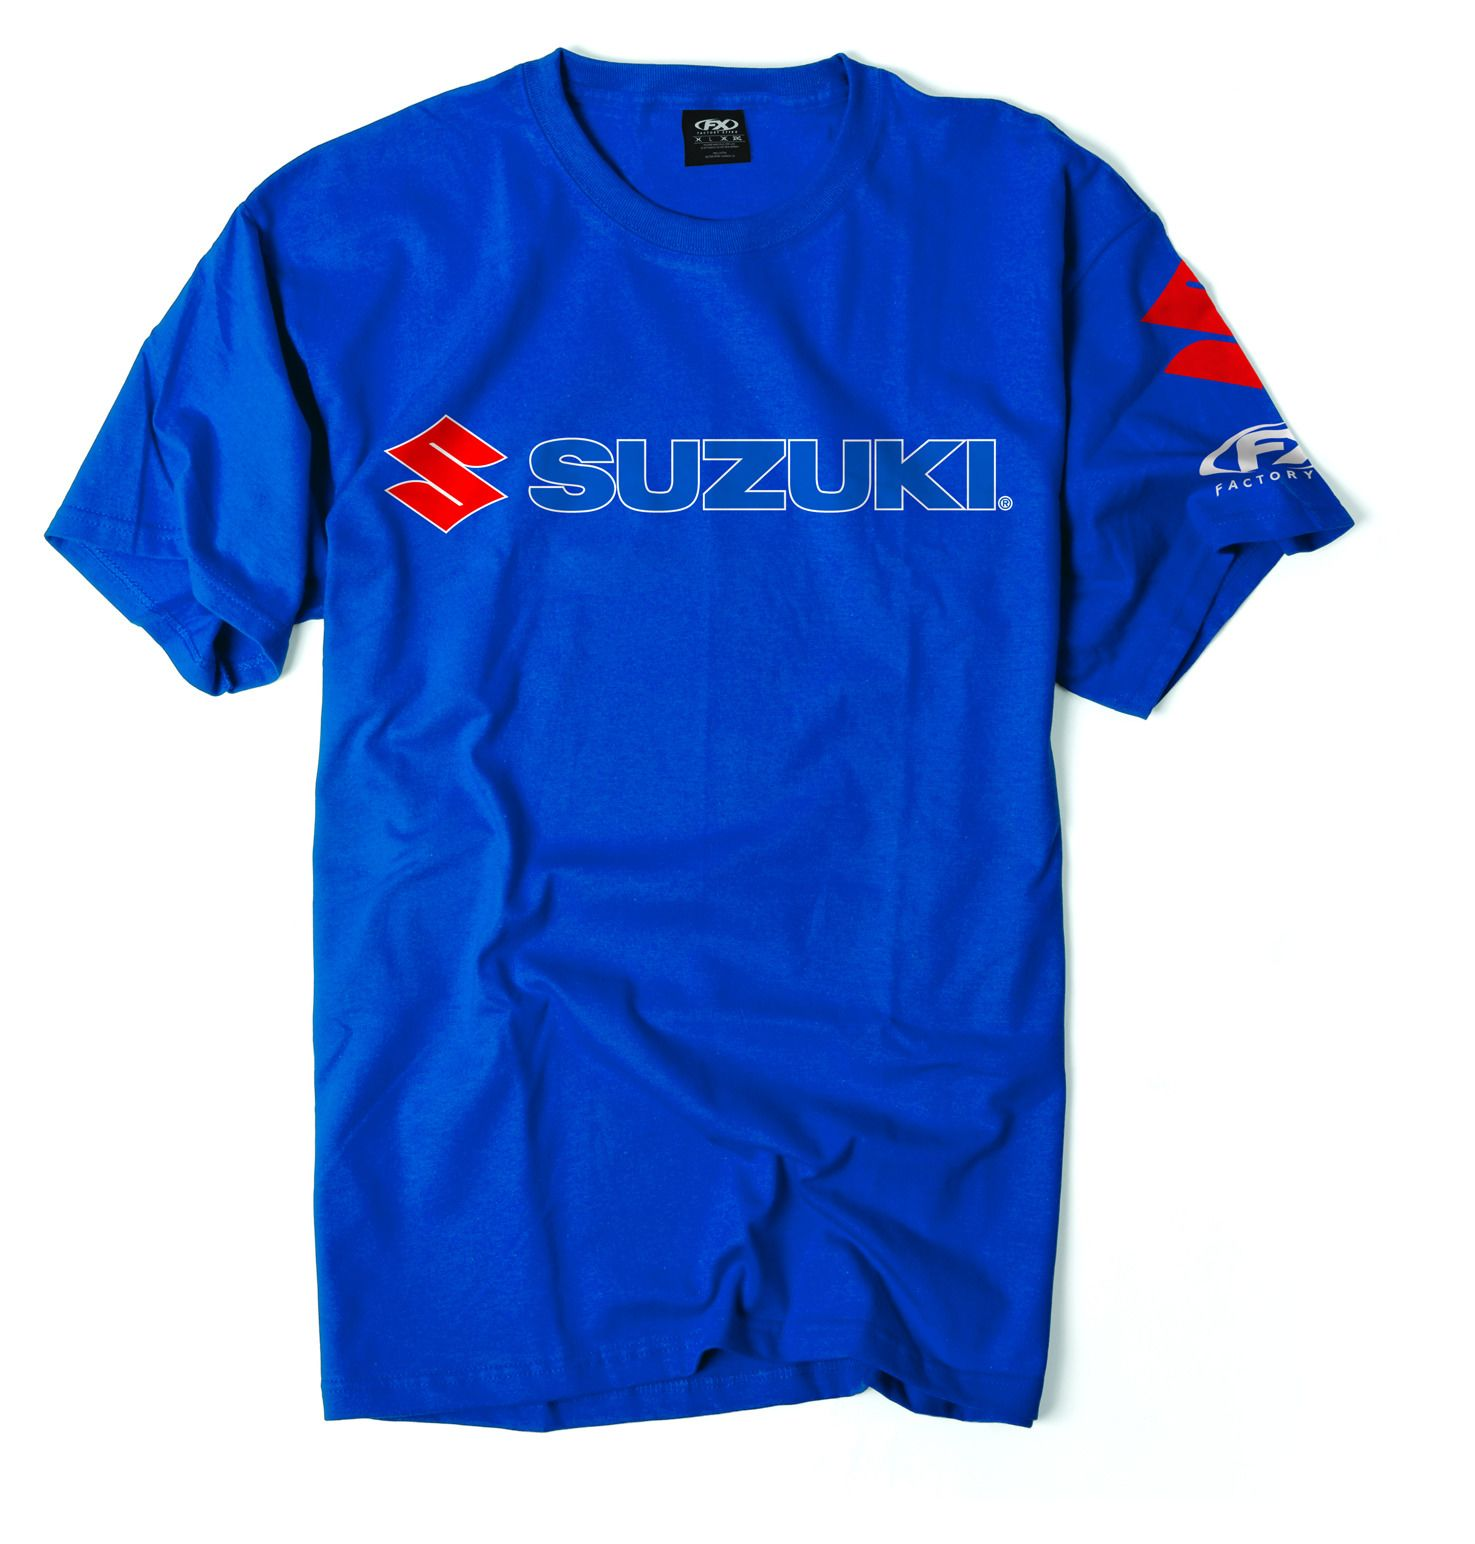 factory effex suzuki team t shirt revzilla. Black Bedroom Furniture Sets. Home Design Ideas